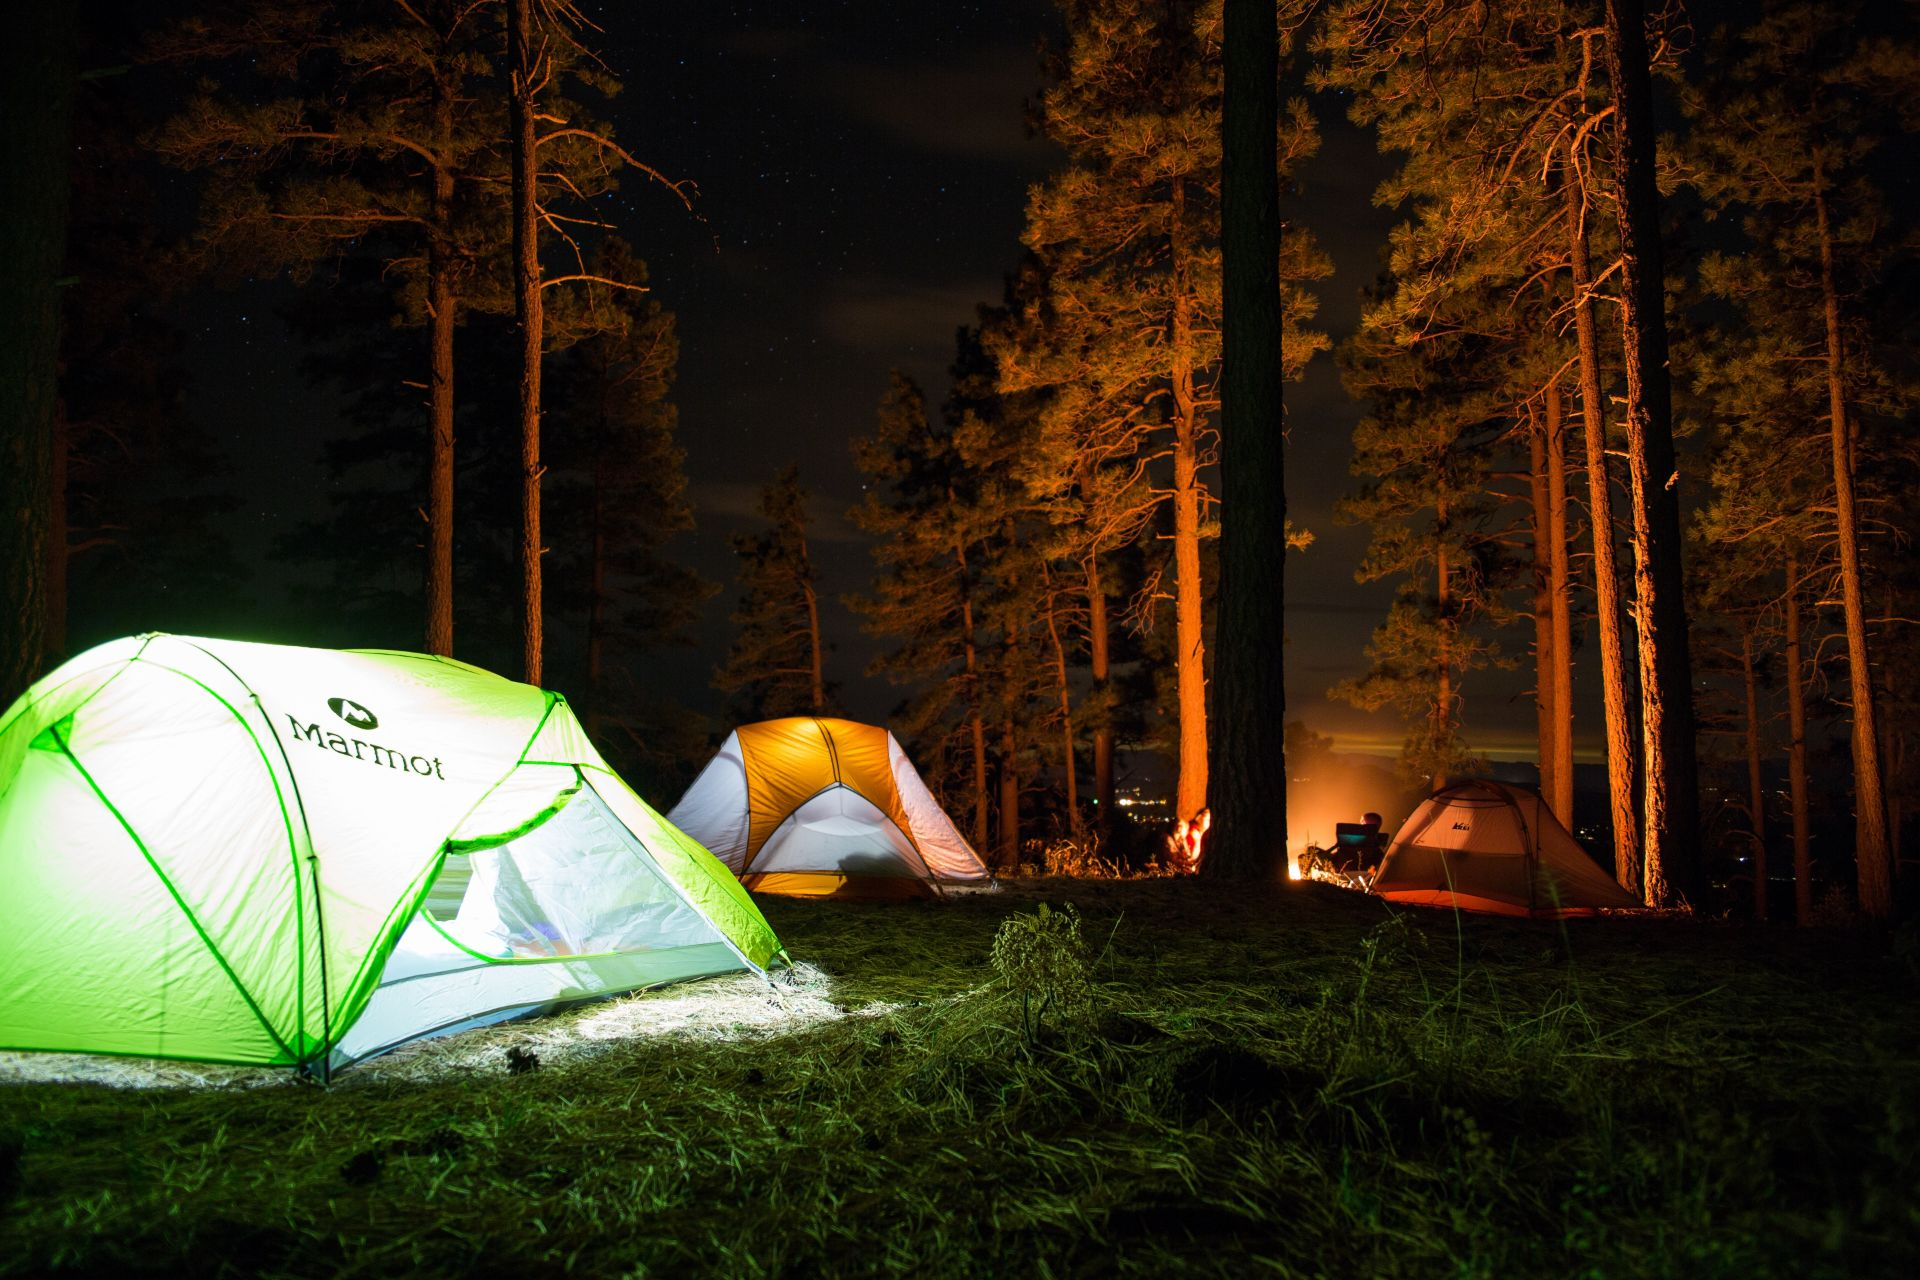 green-and-orange-tents-in-forest-at-night-lit-up-by-bonfire-torches-and-light